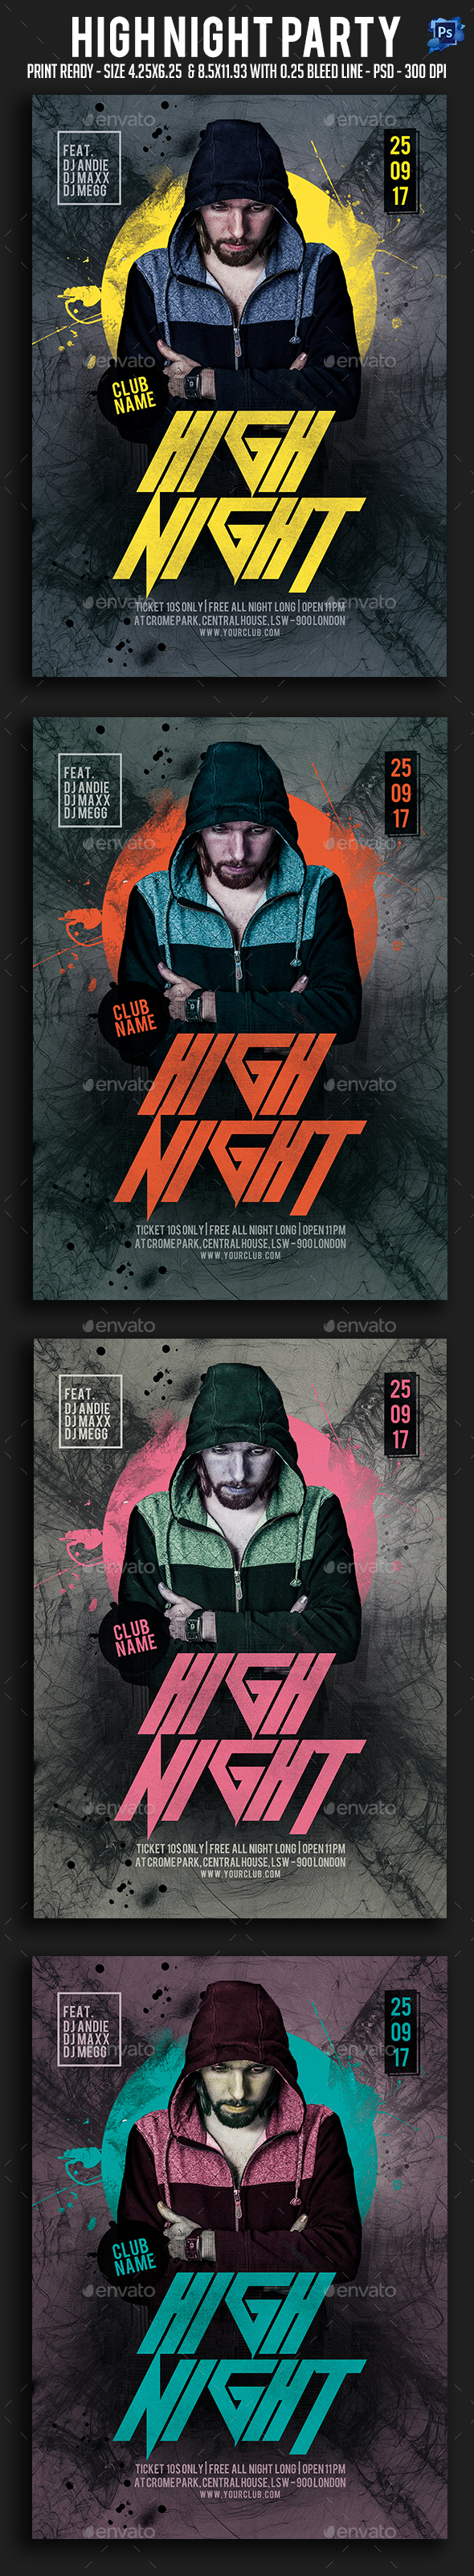 High Night Party Flyer - Clubs & Parties Events